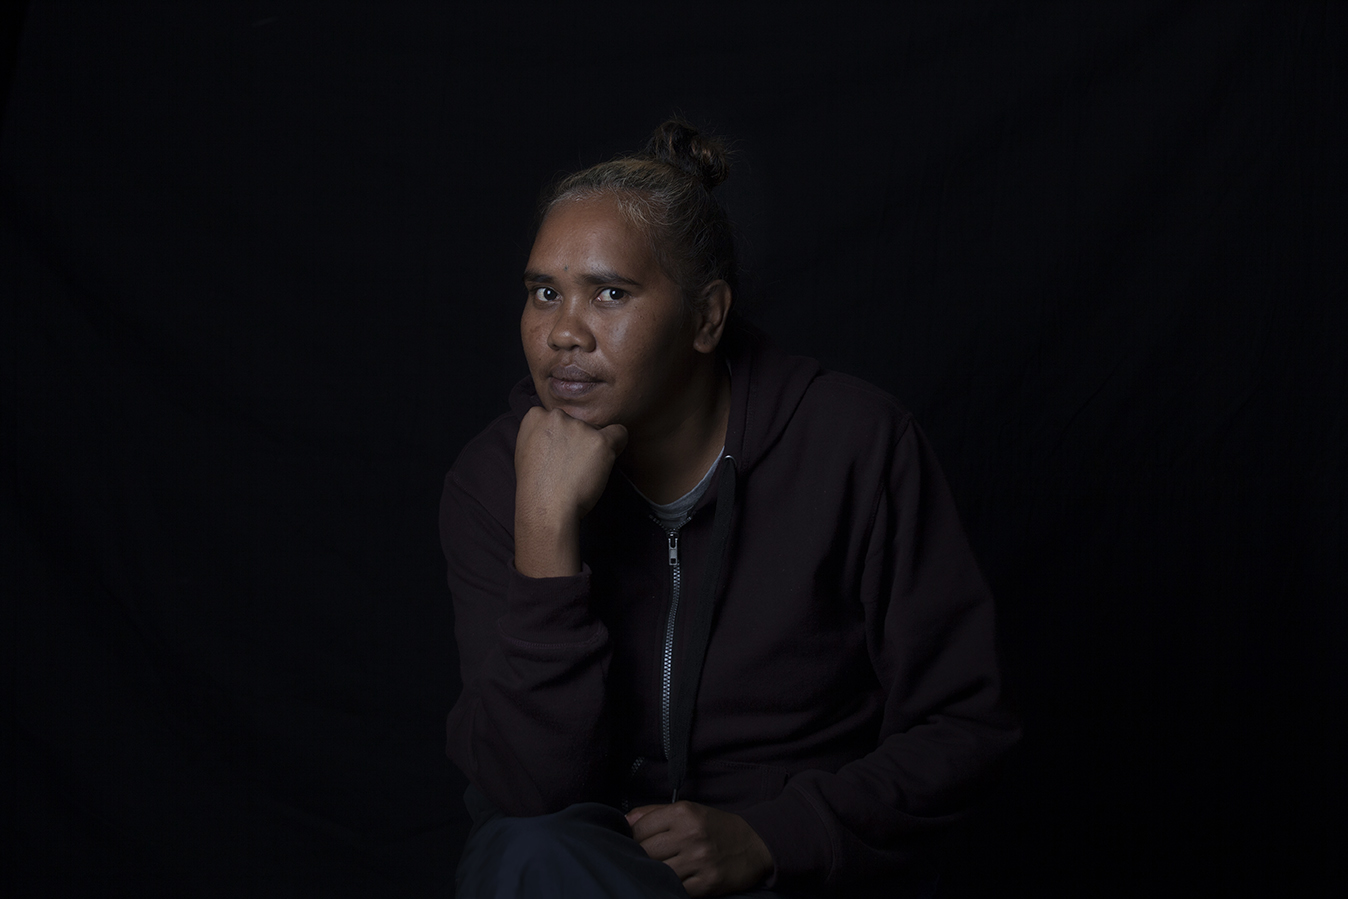 KRISTABELL PORTER    Kristabell lives in Warakurna community with her family. She has been an arts worker at Warakurna Artists since 2014, specifically working with digital design and the street wear project. Kristabell is committed to the art centre and in 2015 took on a leadership role as a Director on the board. Kristabell has recently exhibited in  NGURRA: Home in the Ngaanyatjarra Lands  (South Australian Museum, Tarnanthi Festival, 2019),  Desert Mob  (Araluen Art Centre, 2018), and  Rightfully Ours, Rightfully Yours: Visualising Indigenous Human Rights  (Perth Centre for Photography, 2016).